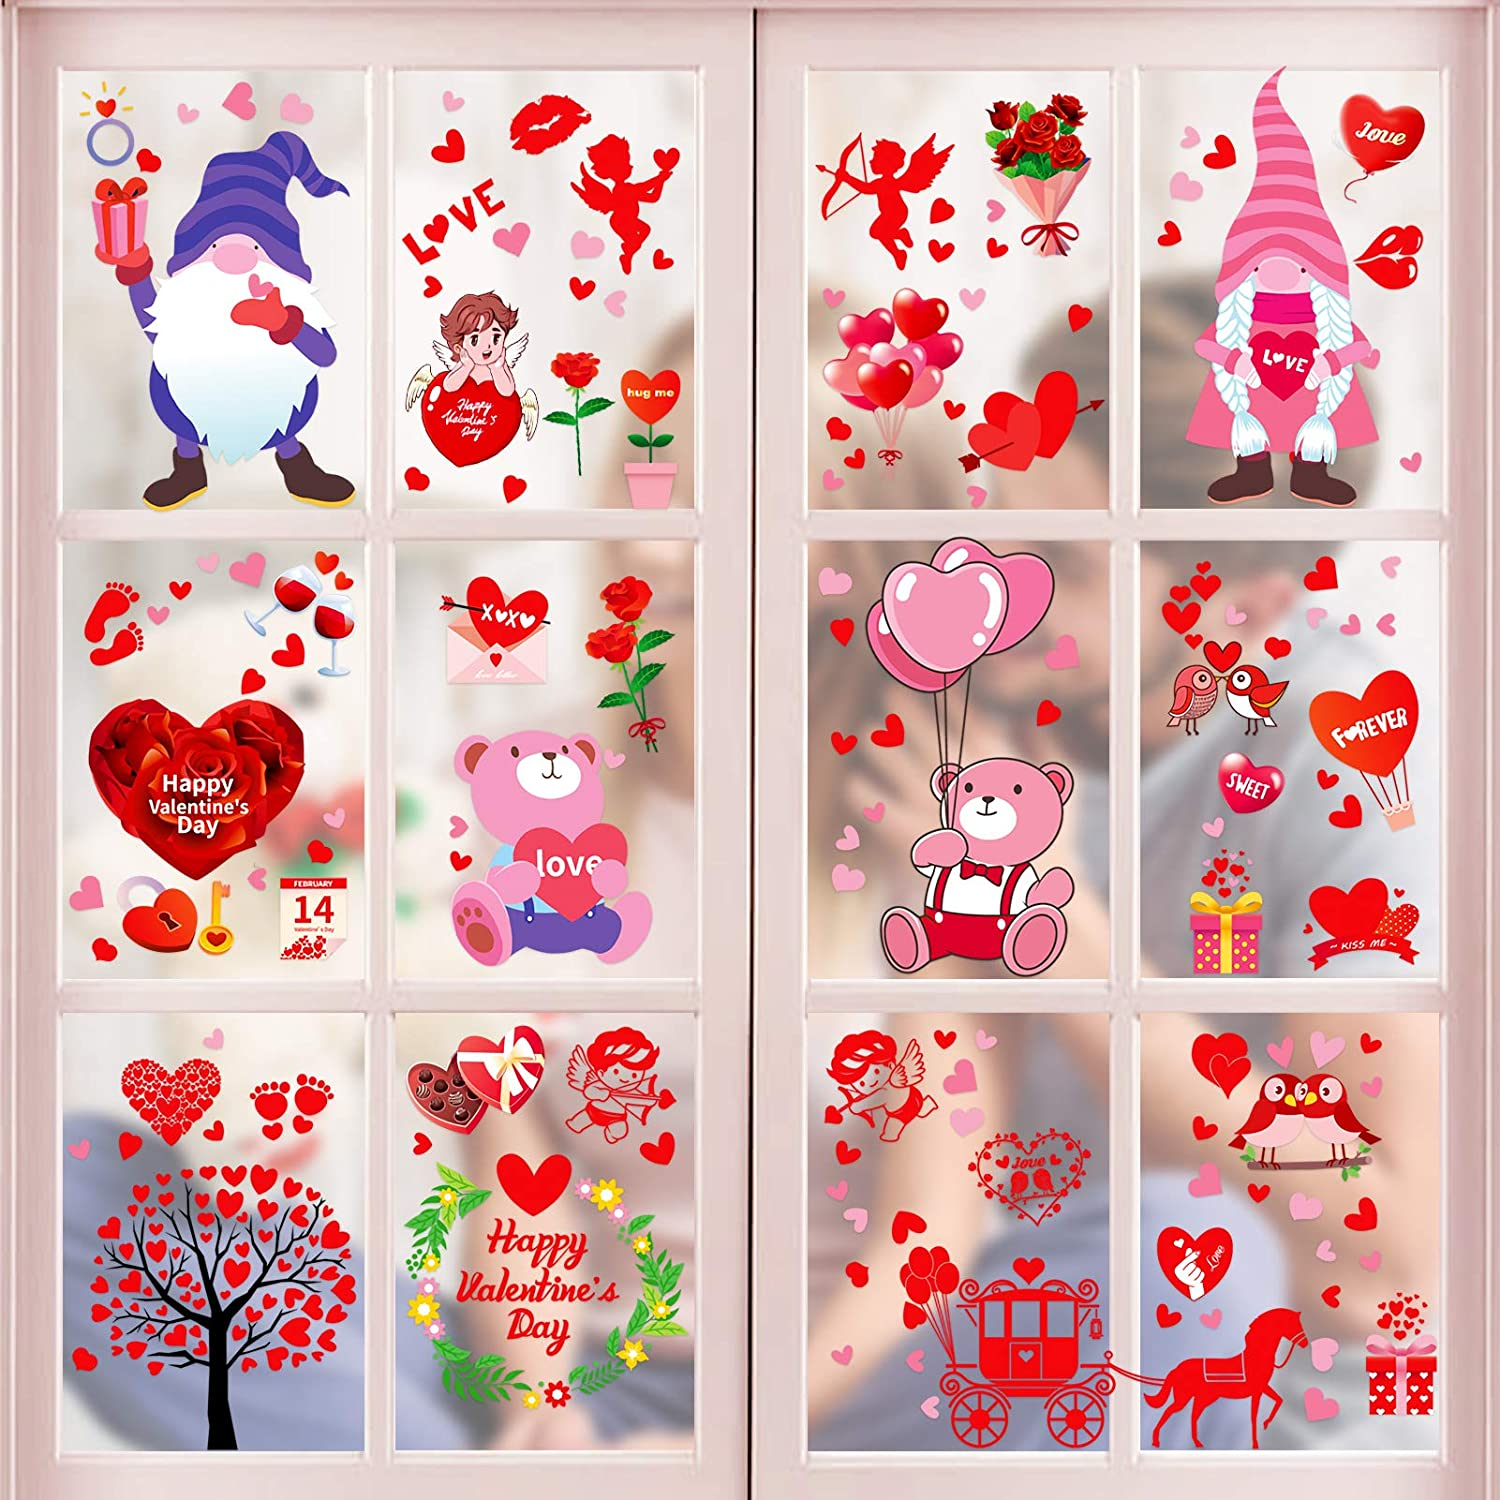 Konsait 140pcs Valentines Day Window Clings Removable Limited time trial Columbus Mall price Win Large